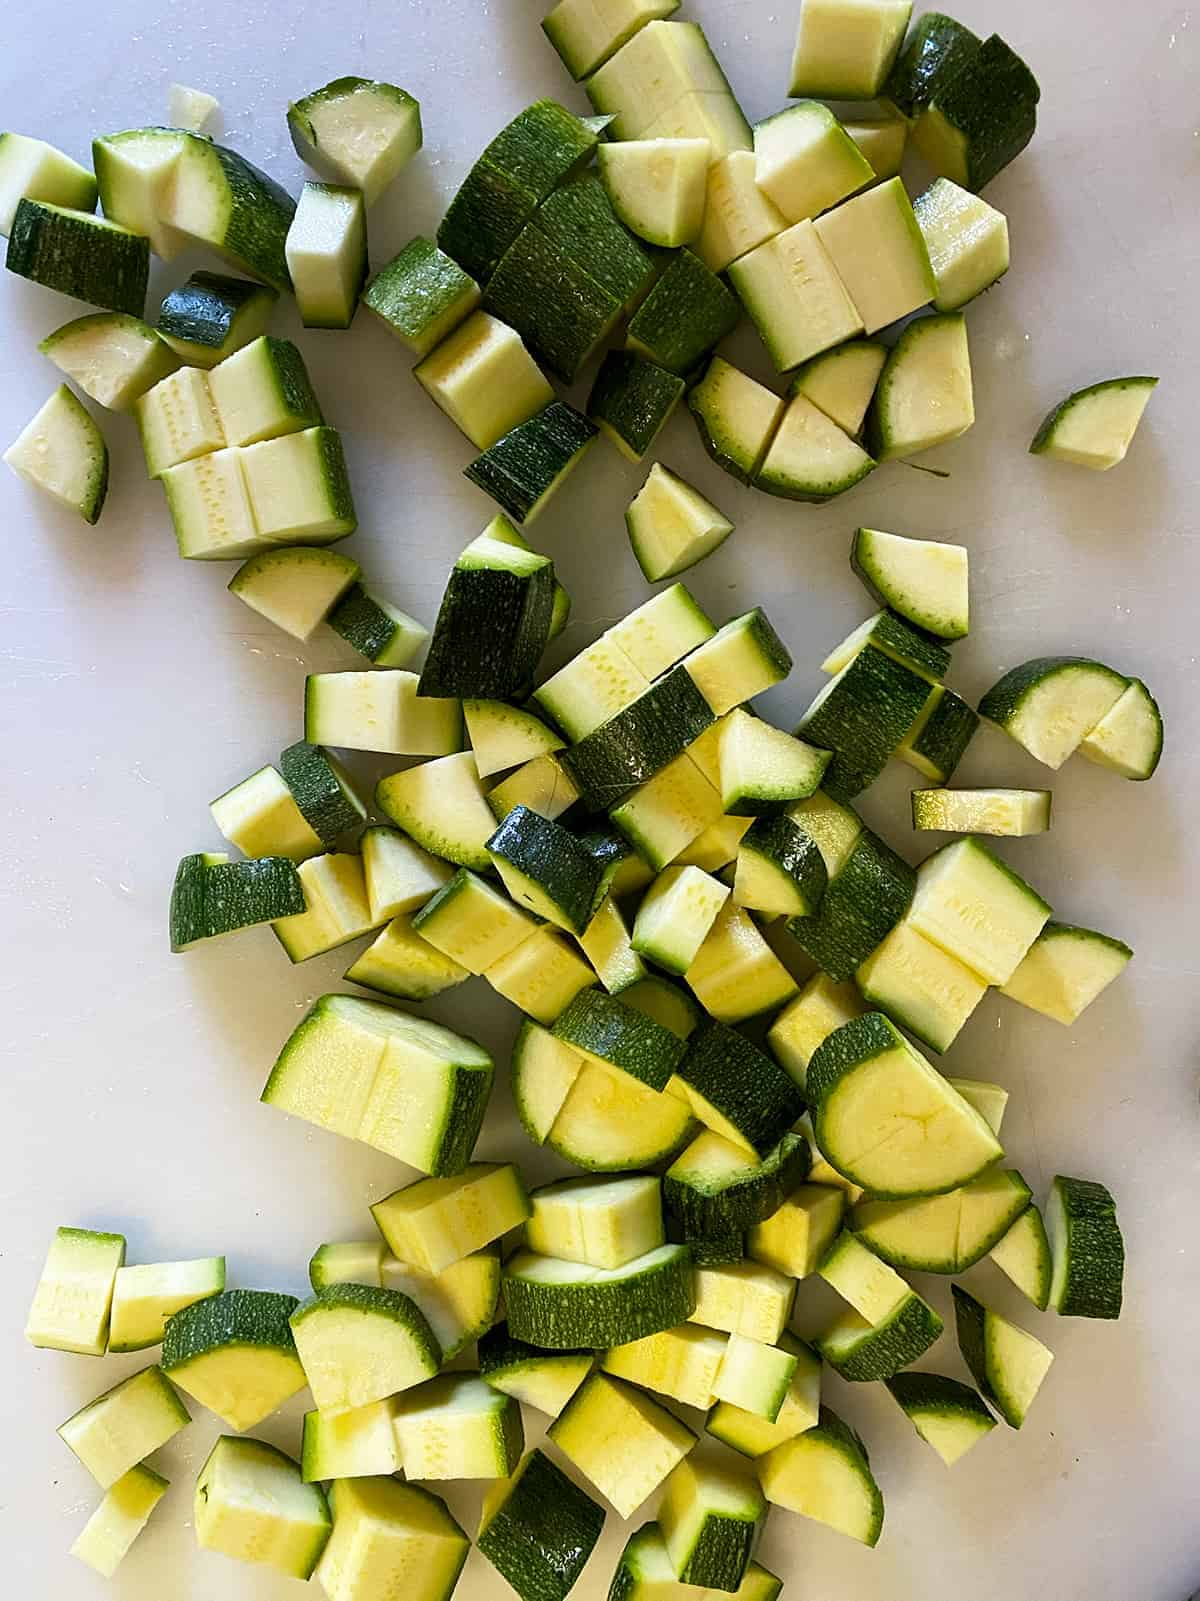 Chopped zucchini on a cutting board.